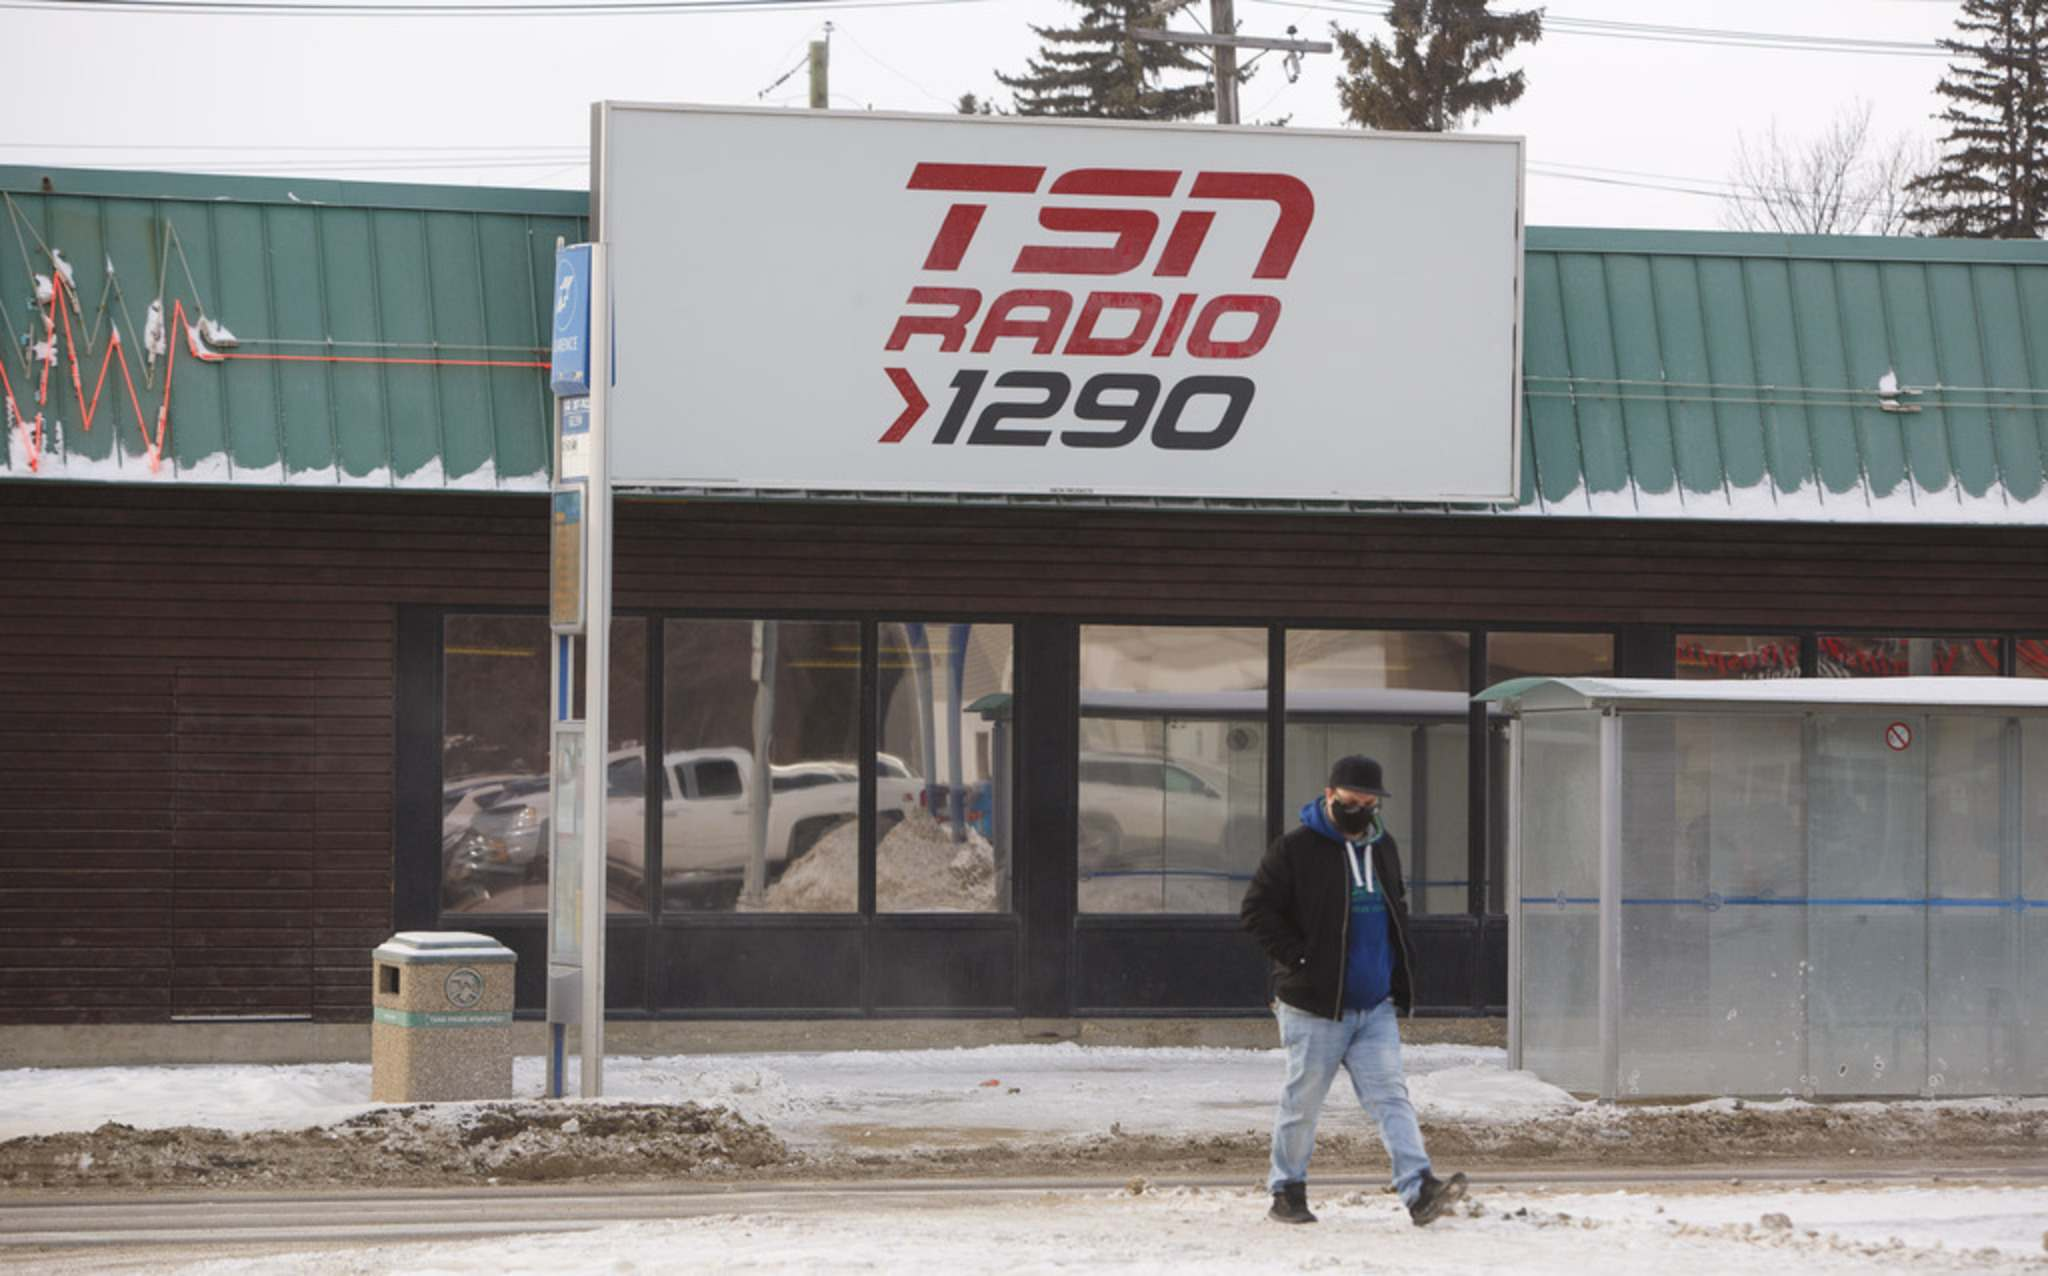 MIKE DEAL / WINNIPEG FREE PRESS</p><p>TSN 1290 AM radio station on Pembina Hwy. is no longer a sports station. The news for the Winnipeg market was broadcast at 11:30 a.m. on the station.</p>